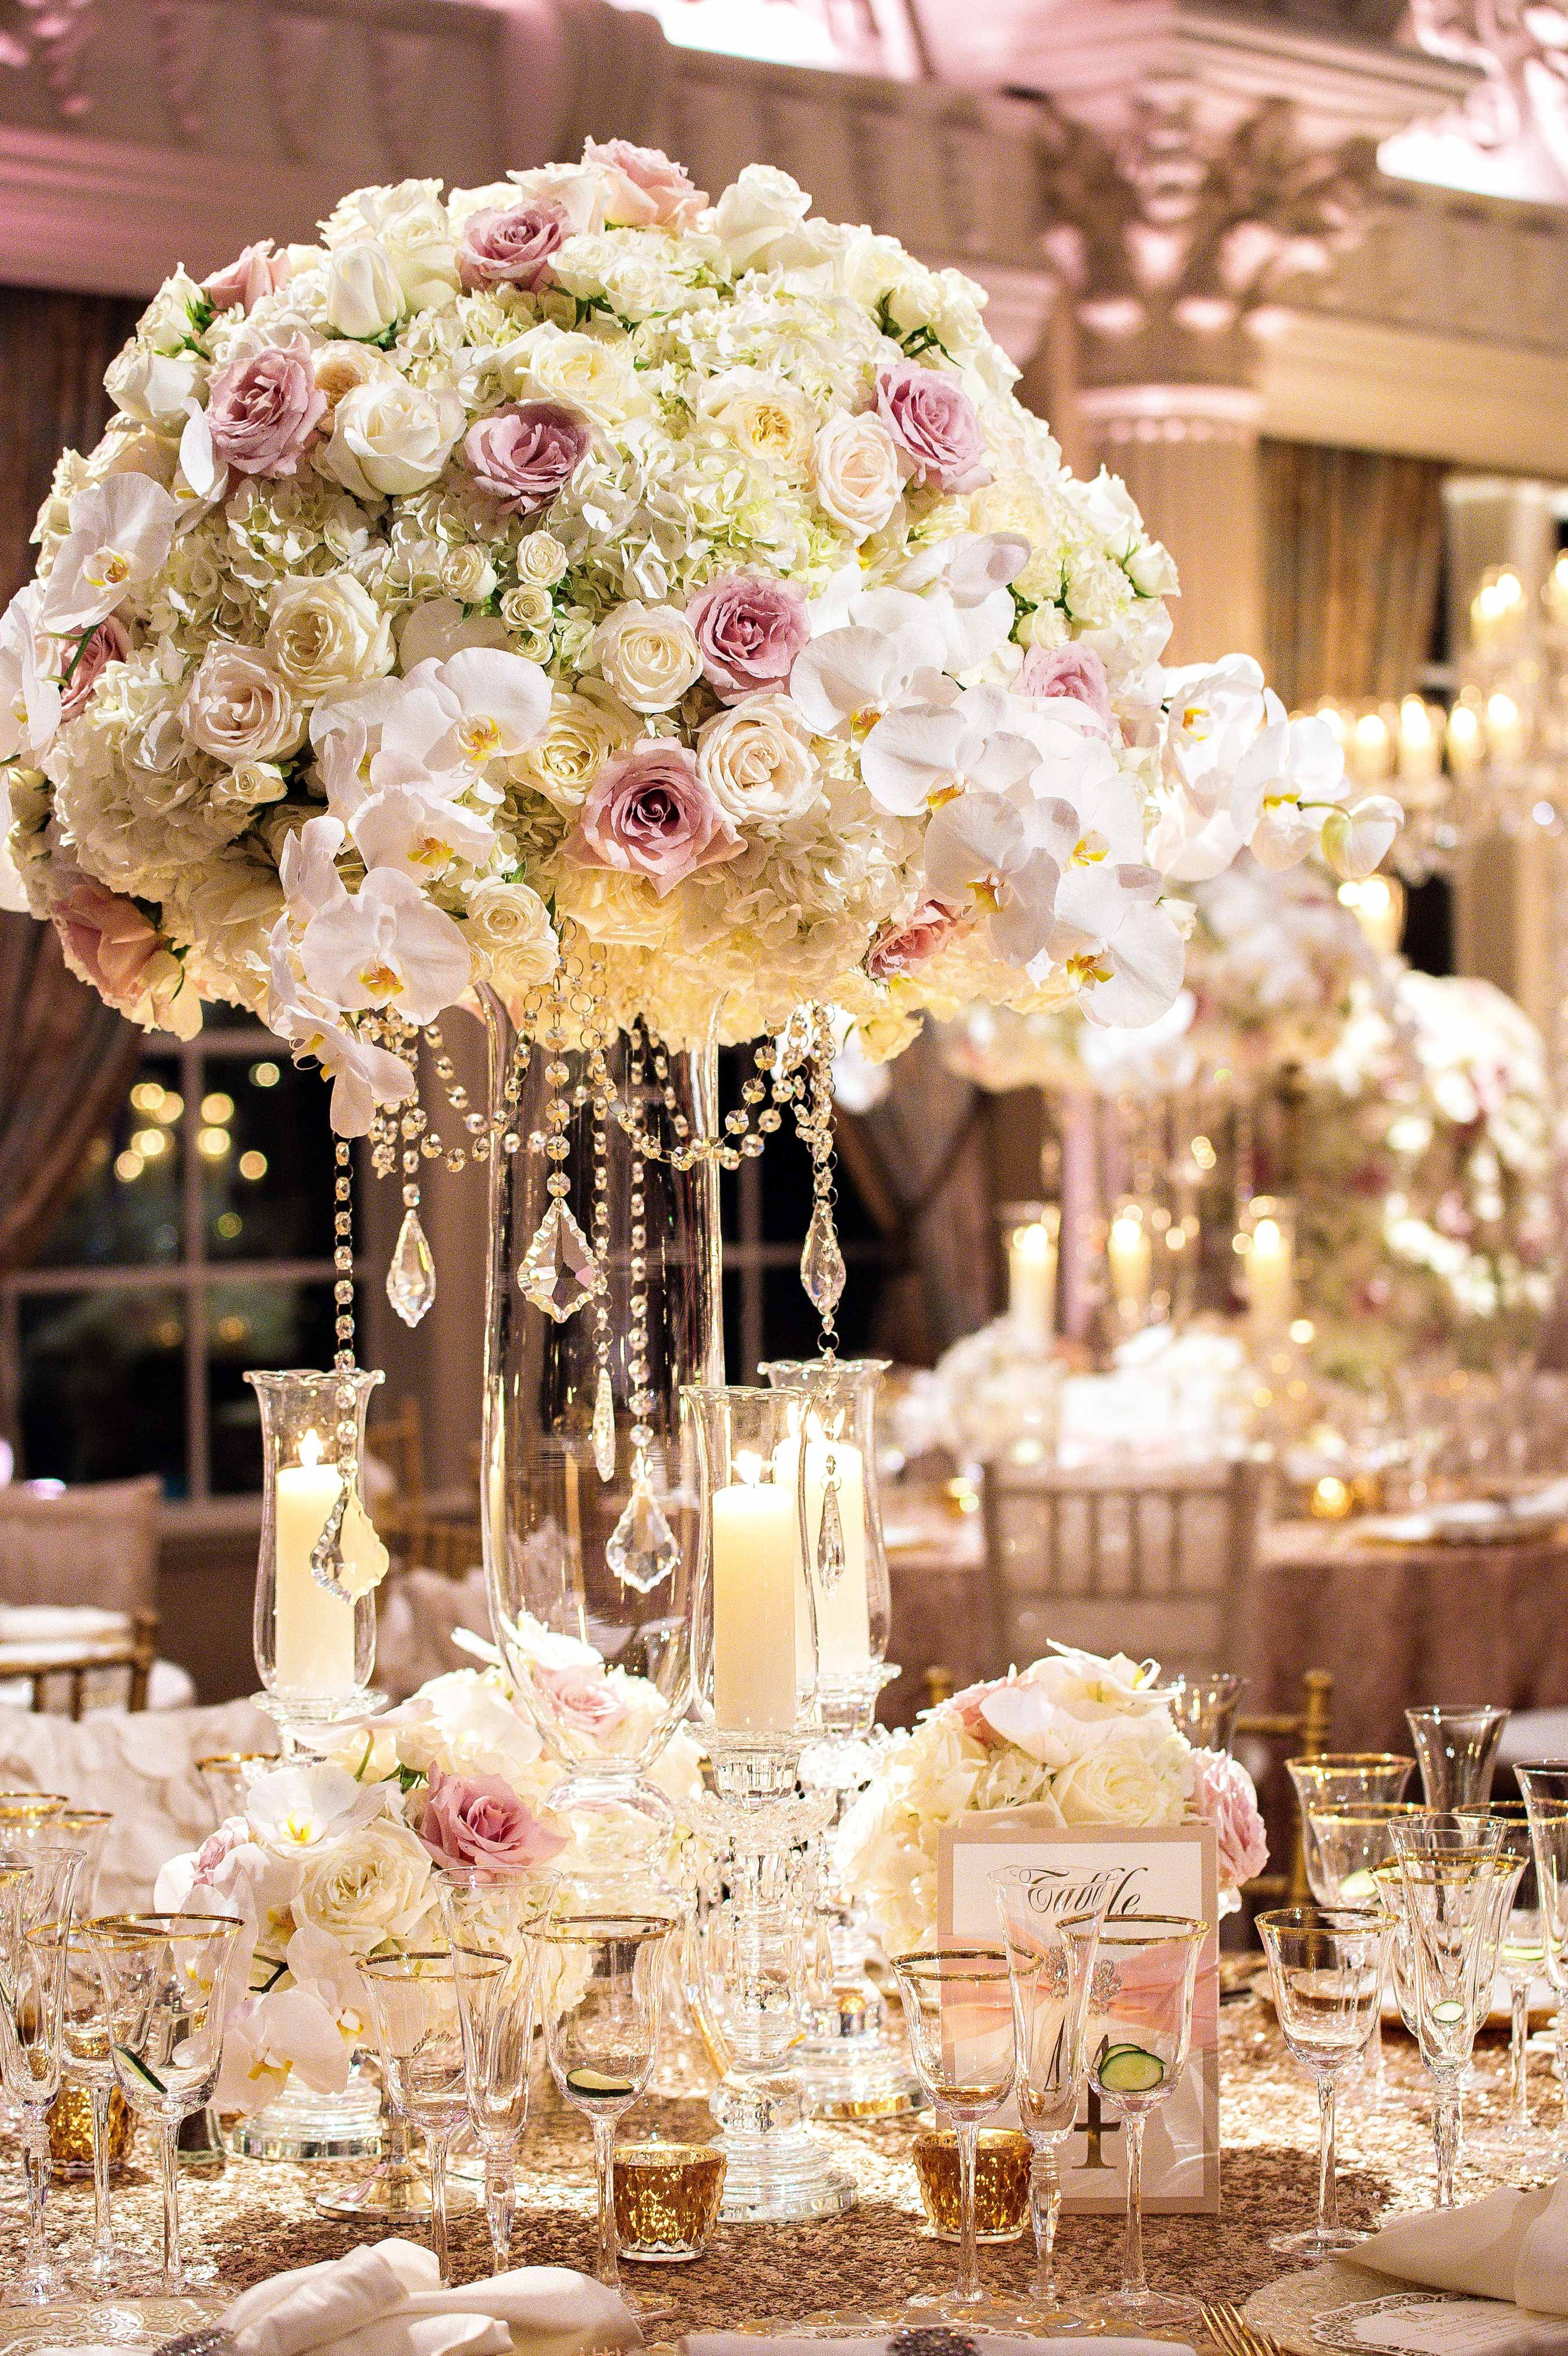 Pink and White Wedding Decor Elegant Wedding Color Palette Pink and Gold Wedding Ideas Inside Weddings